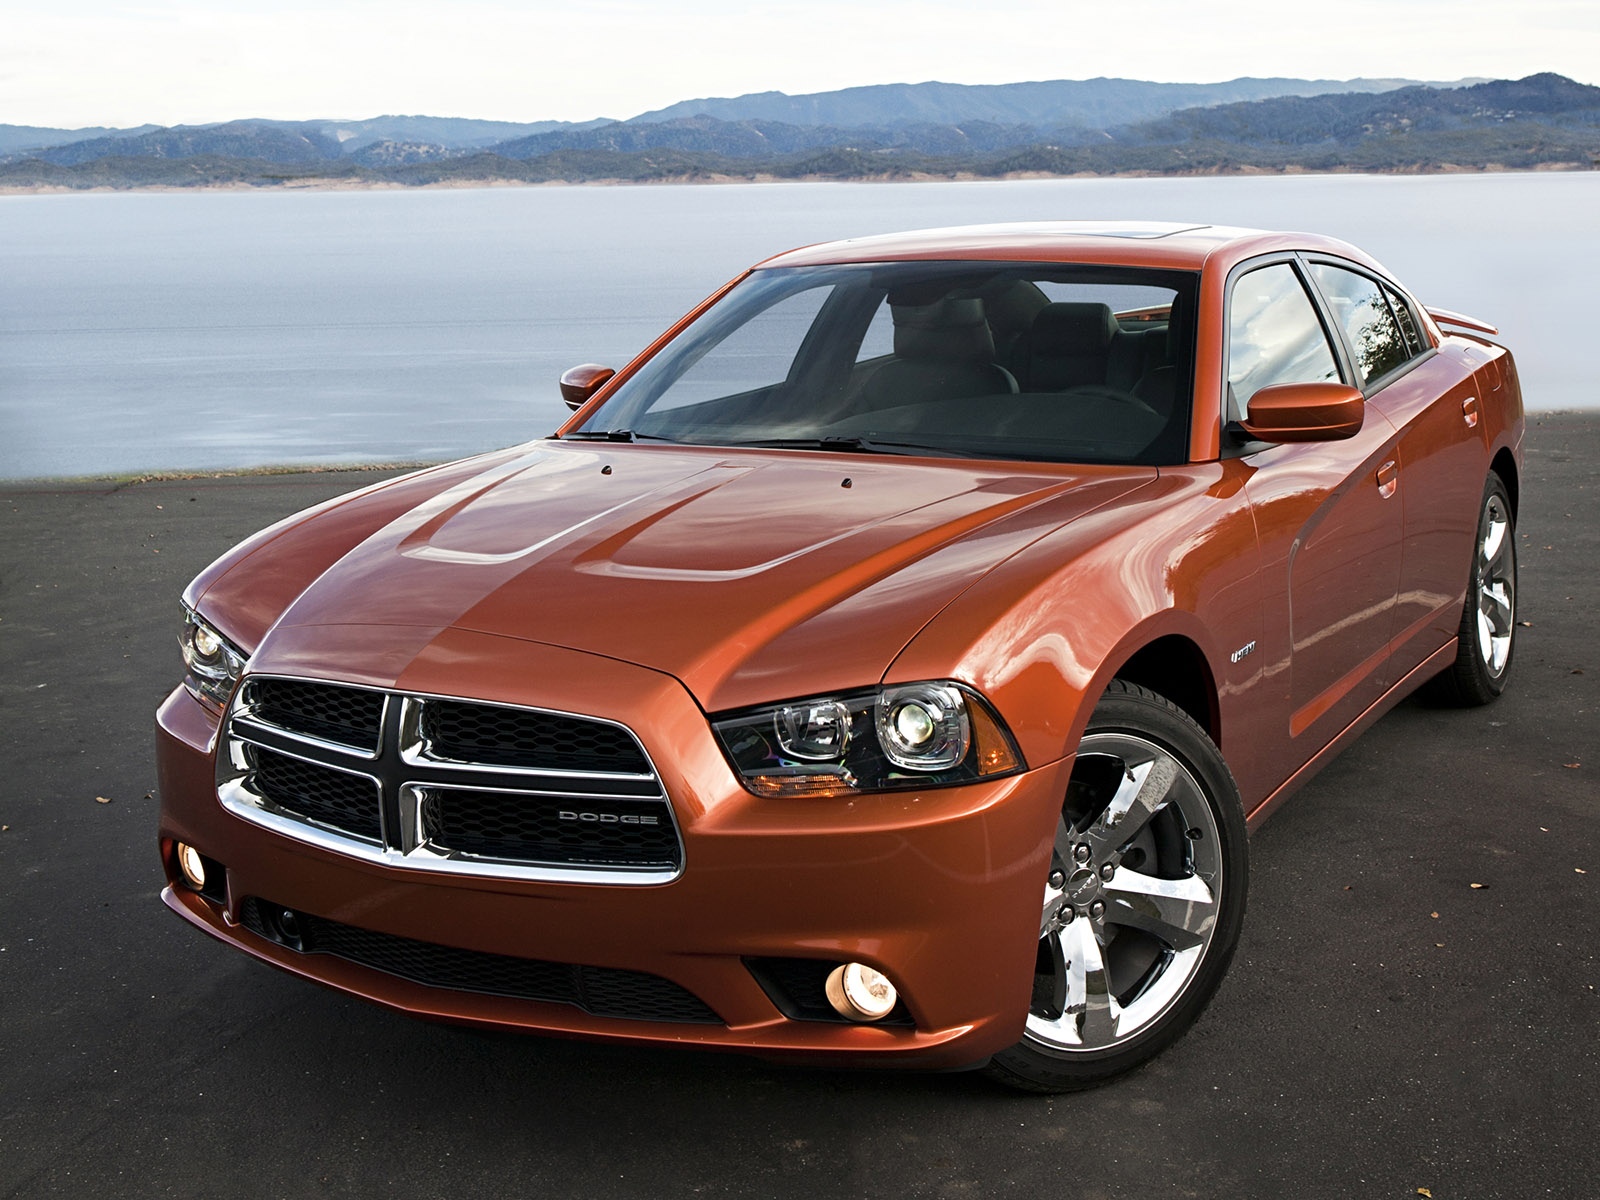 dodge charger rt 2010 dodge charger rt 2010 photo 13 car in pictures car photo gallery. Black Bedroom Furniture Sets. Home Design Ideas